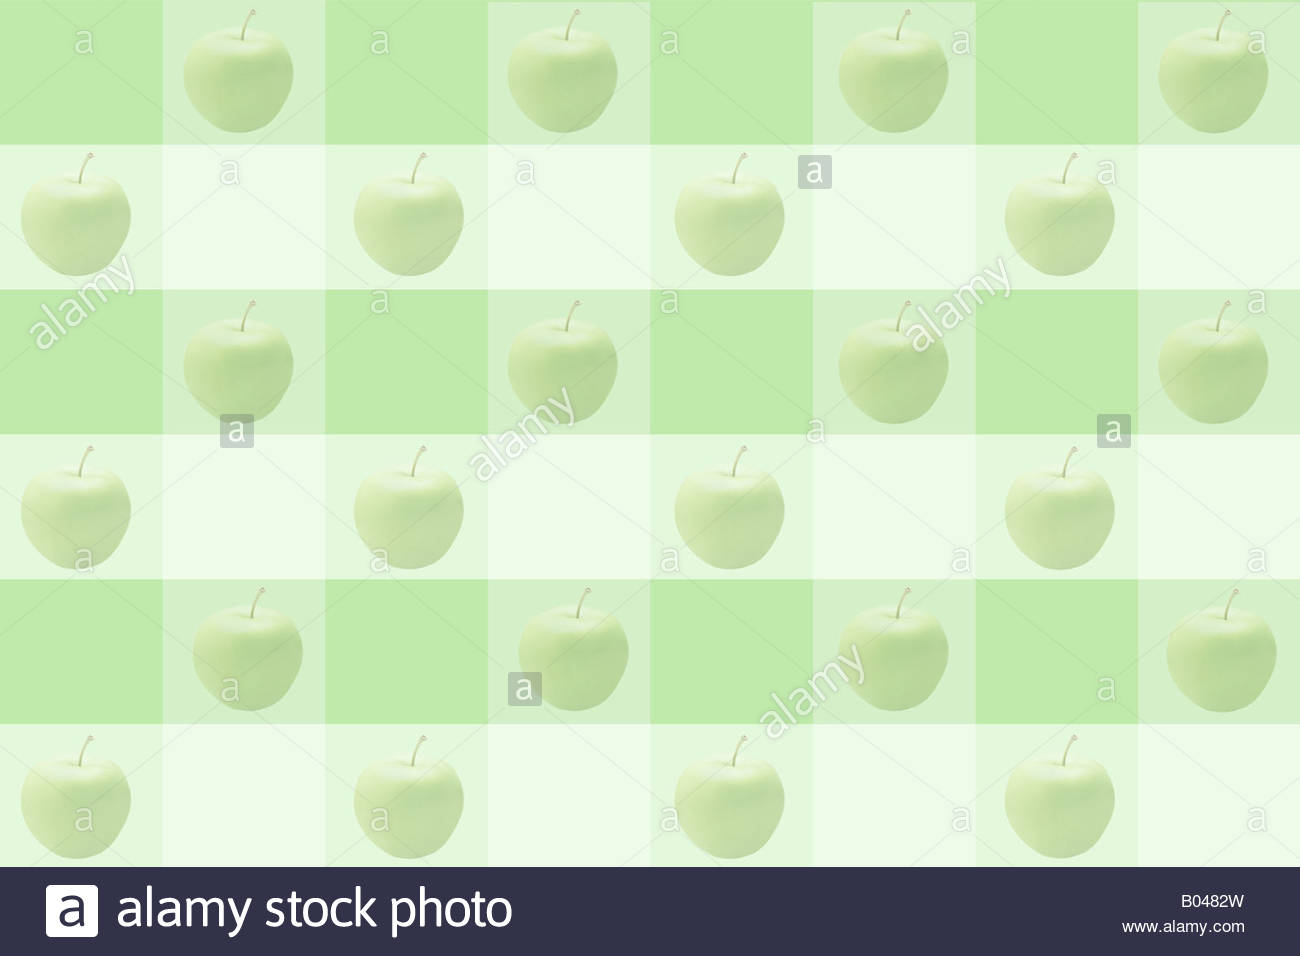 Apples on a checker pattern - Stock Image